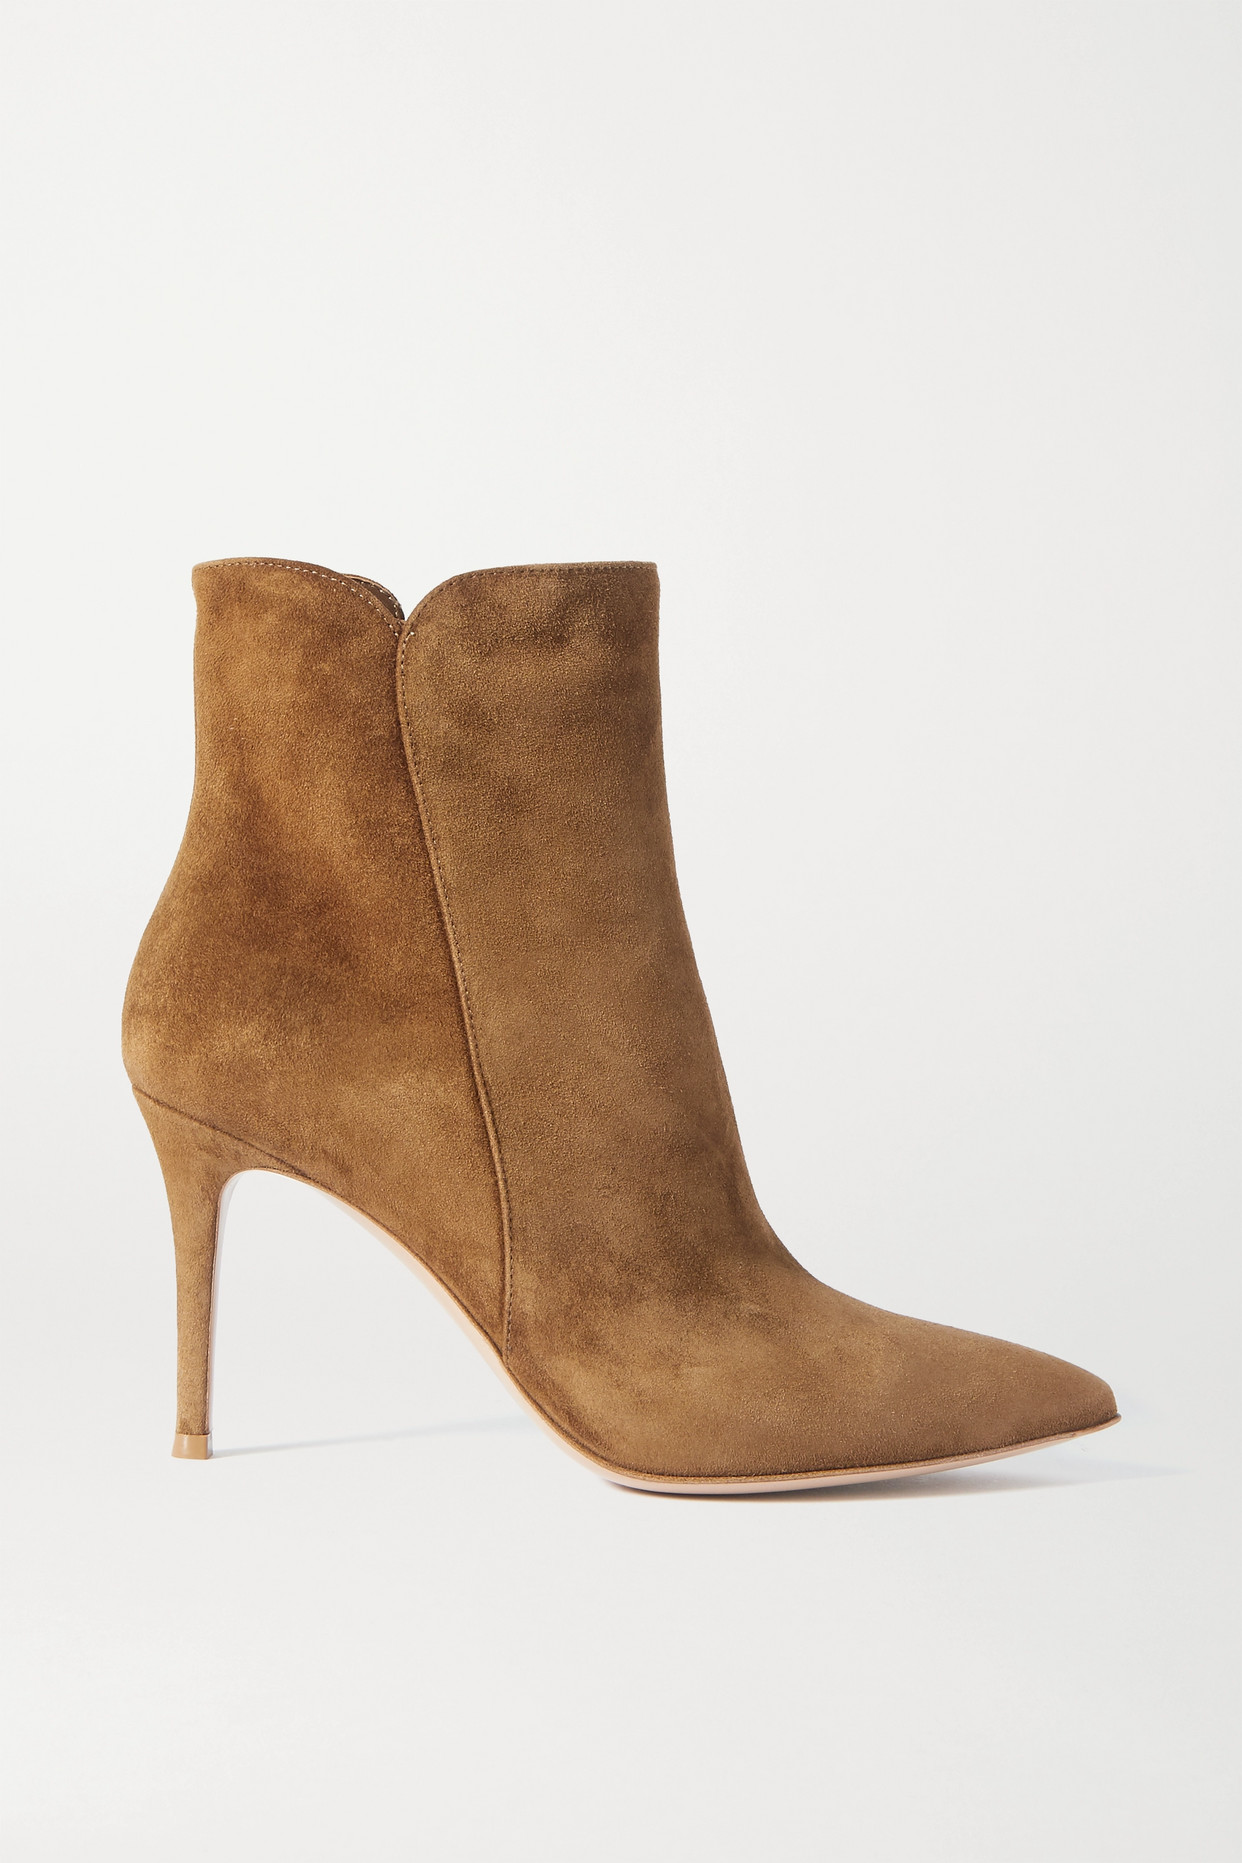 GIANVITO ROSSI - Levy 85 Suede Ankle Boots - Brown - IT40